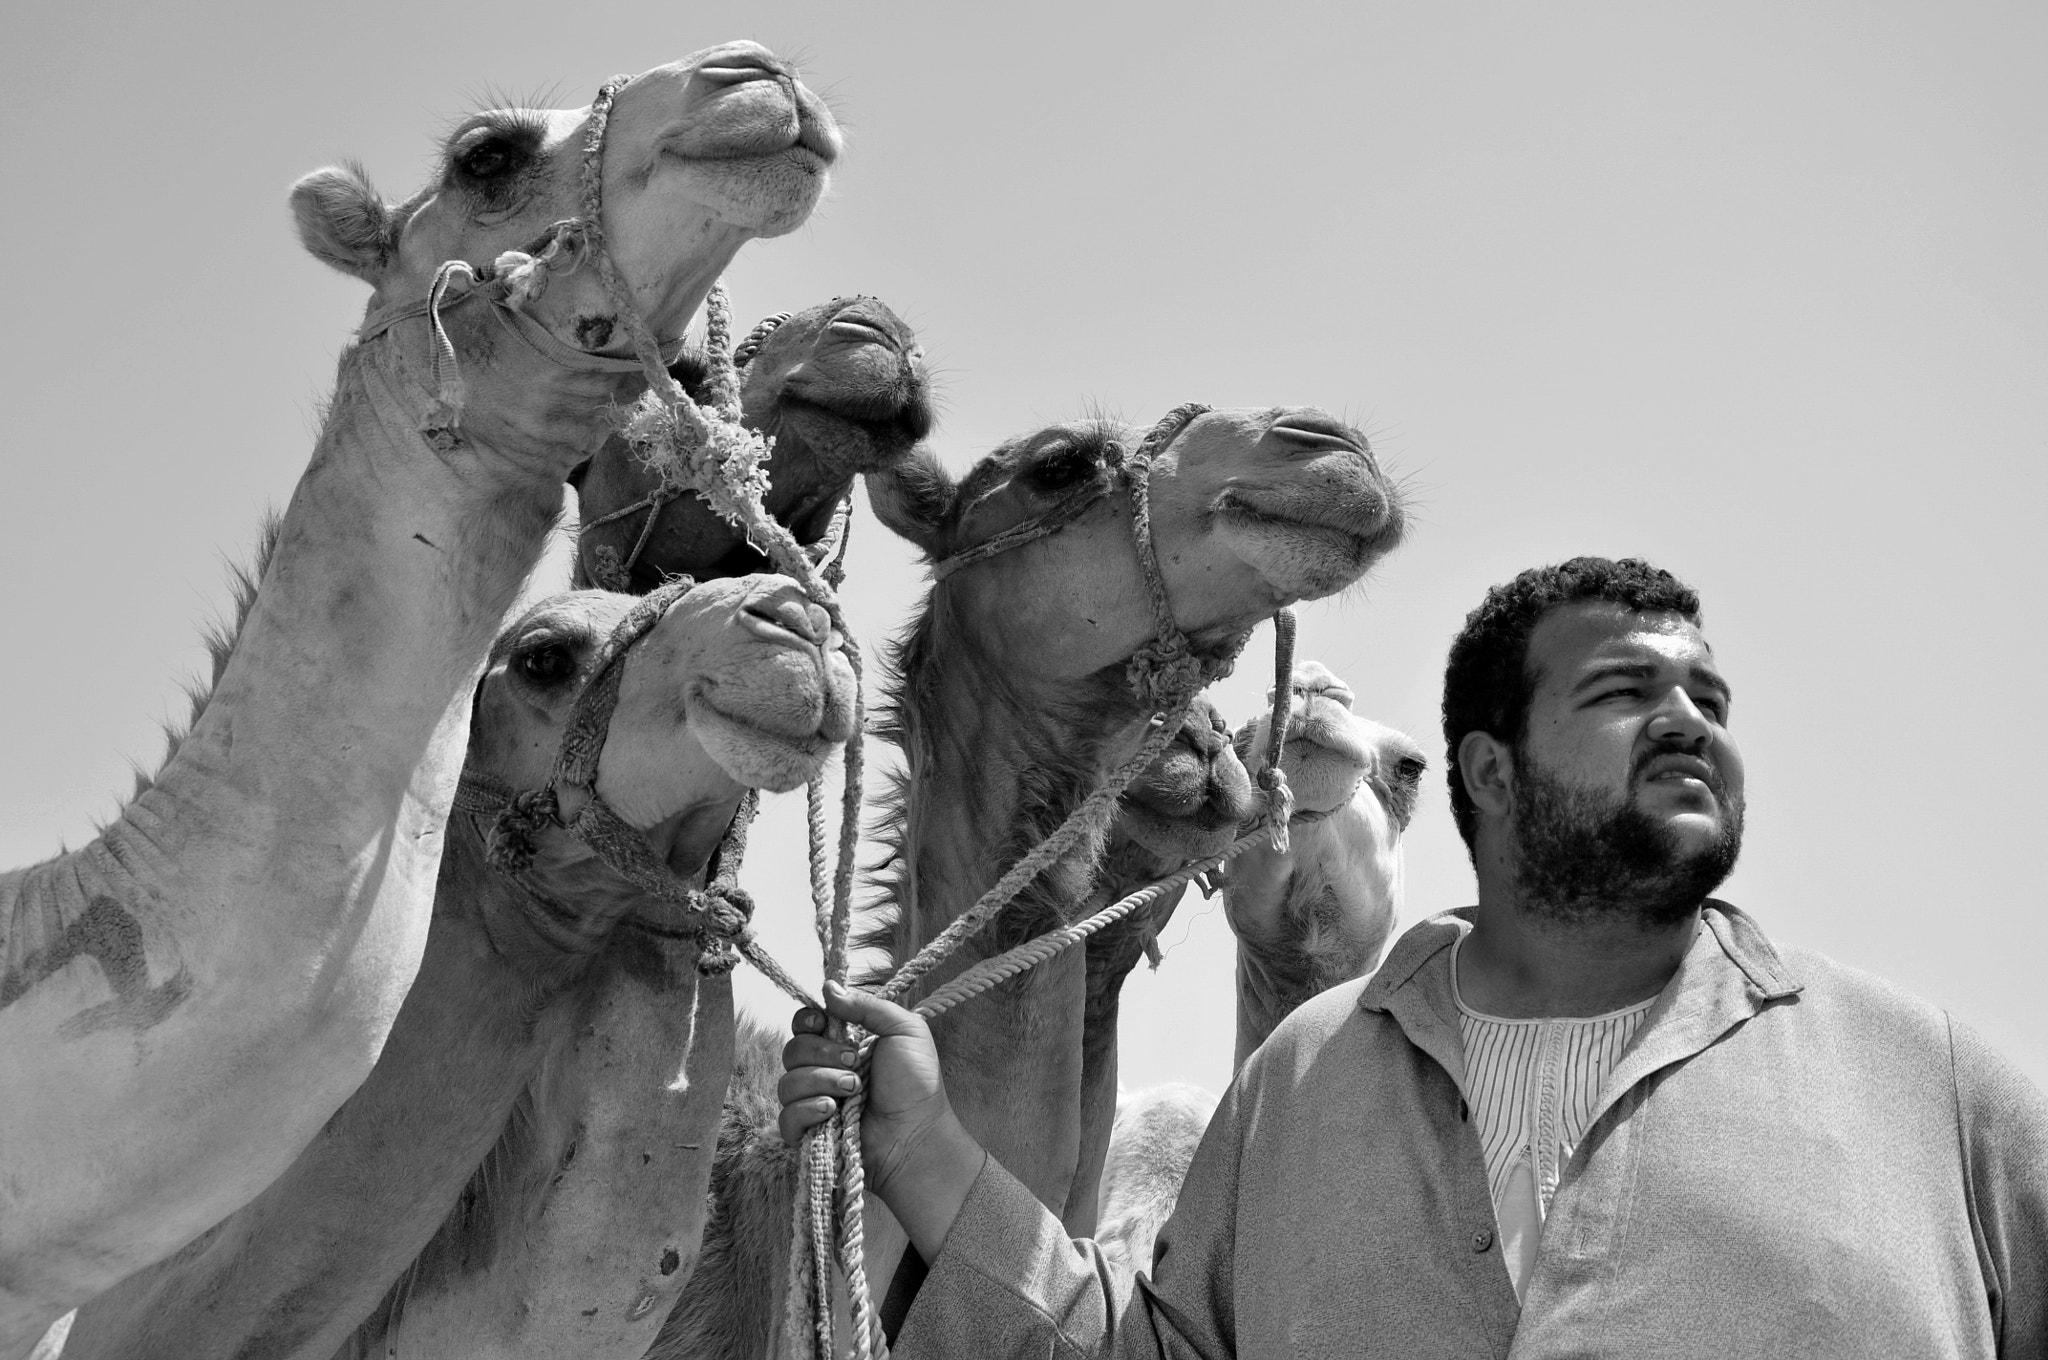 Photograph The Camel Keeper II by Ahmed Yaqub on 500px